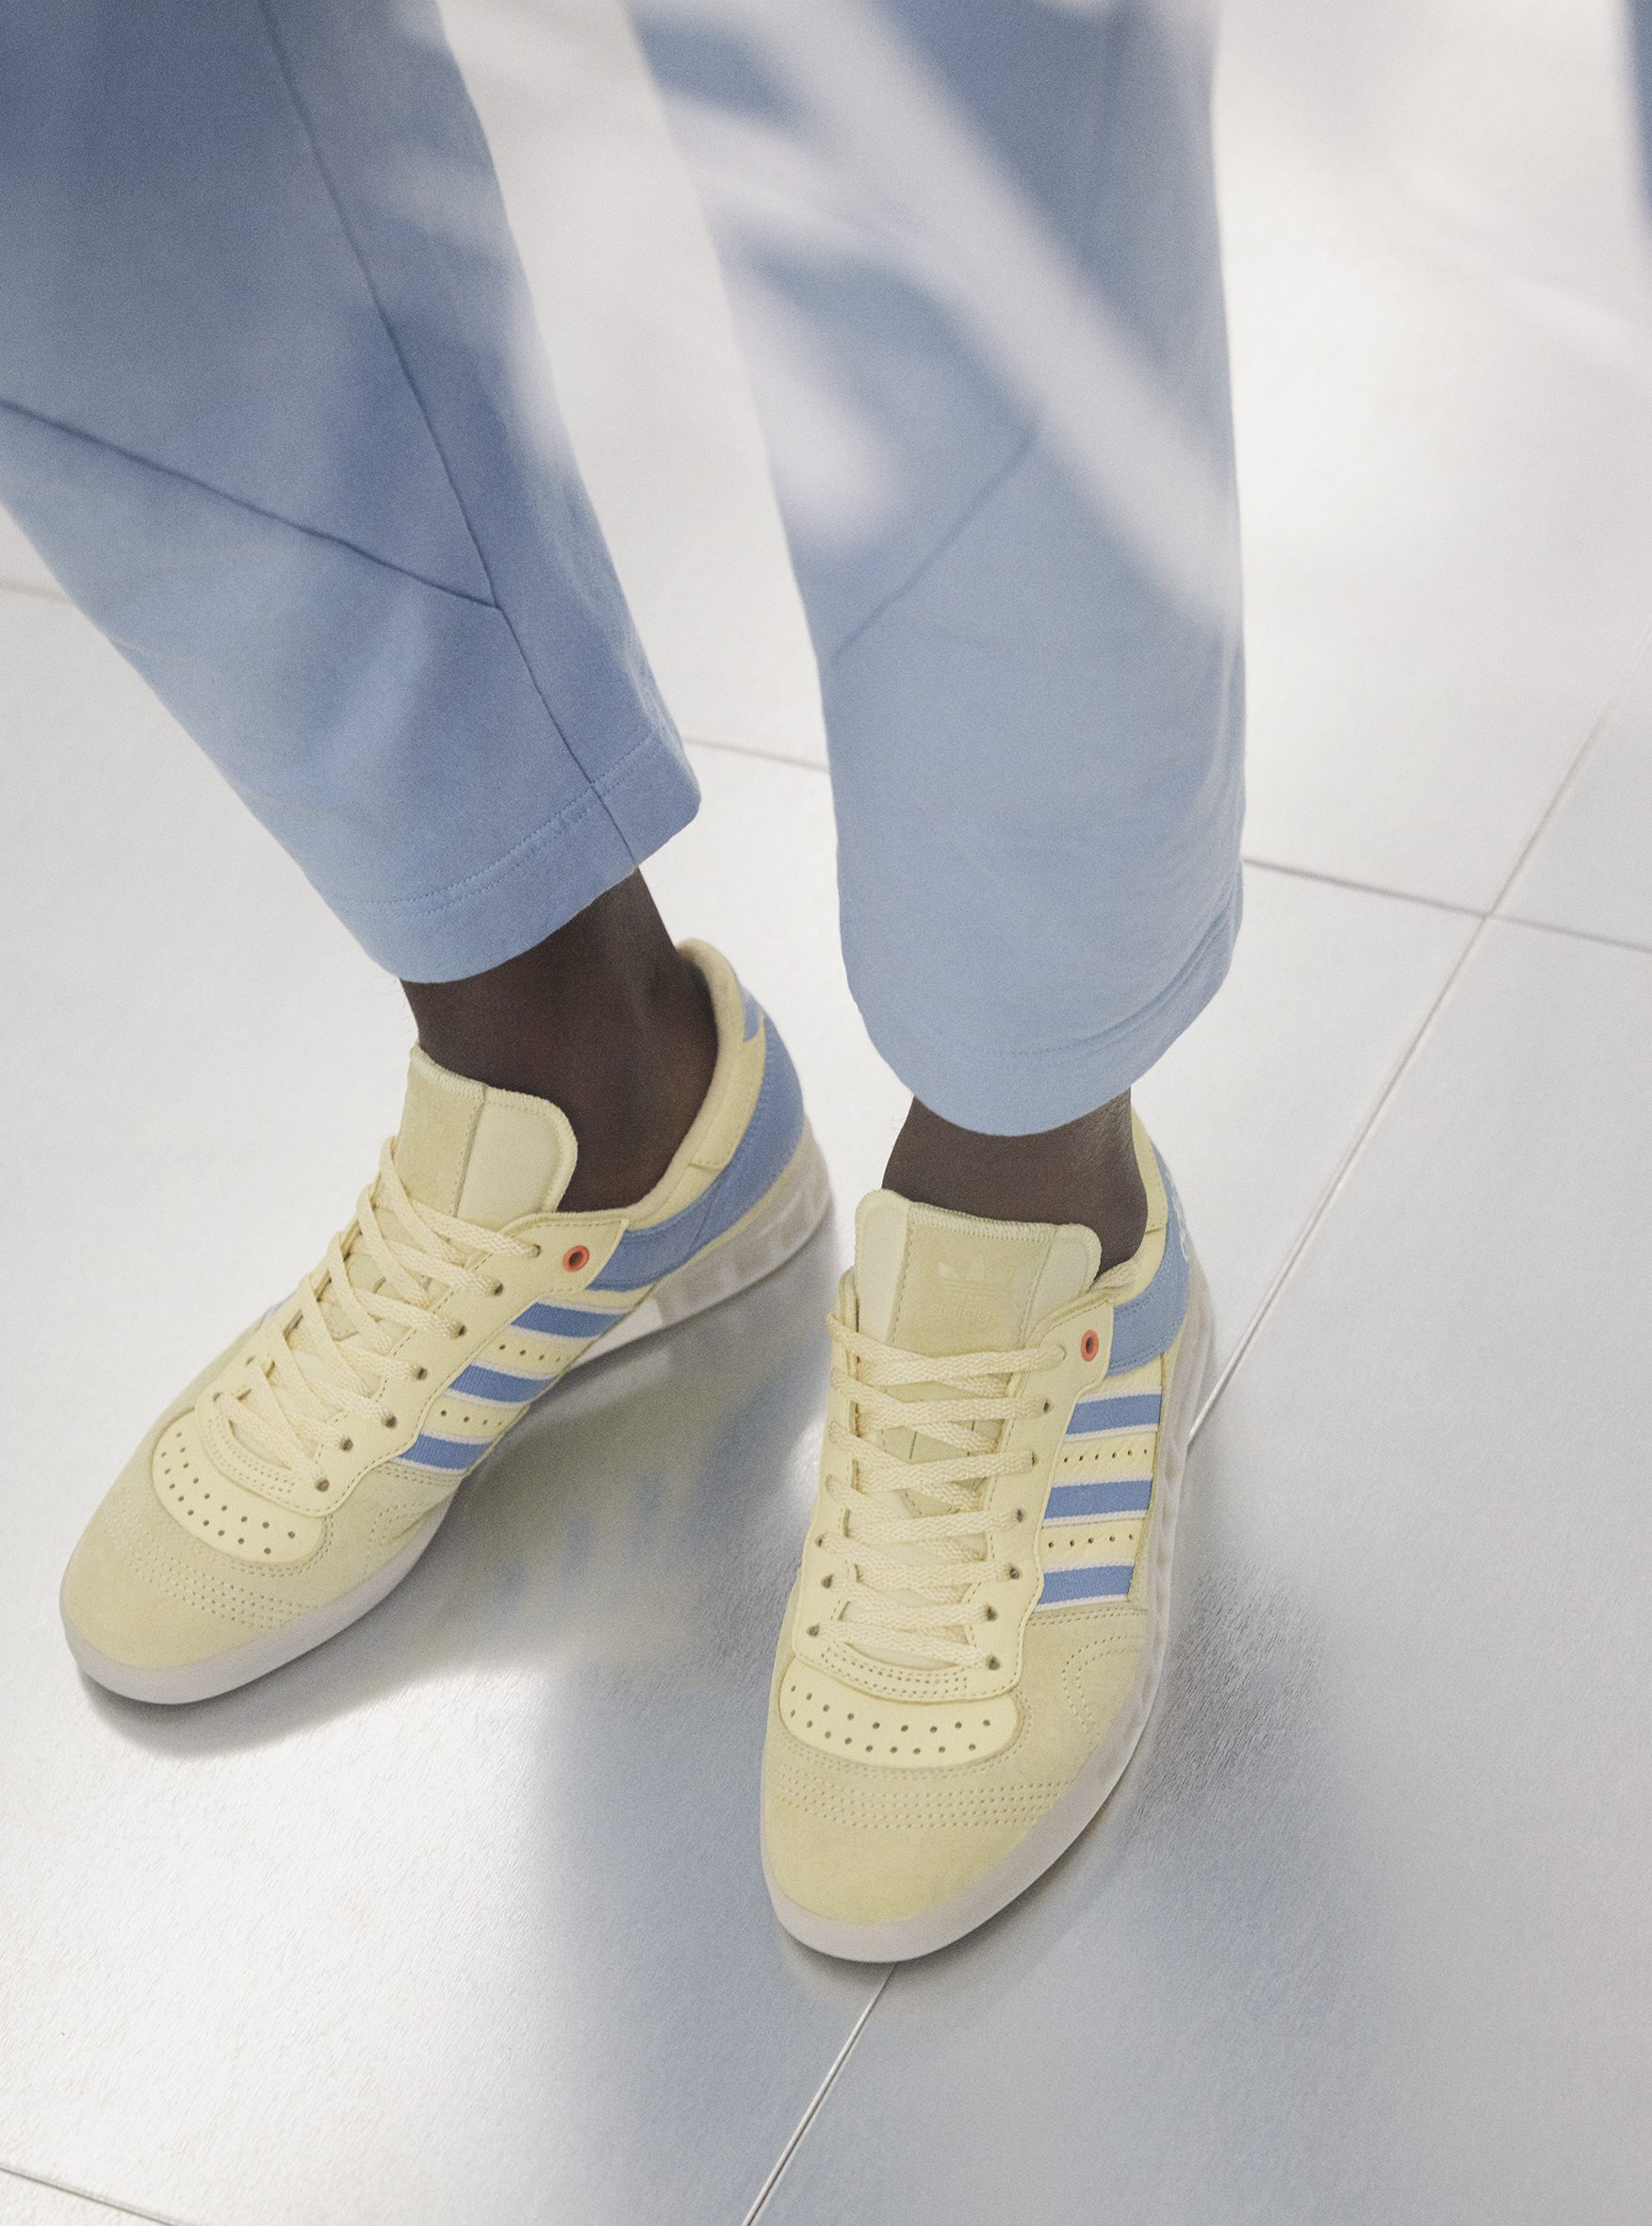 adidas x Oyster Holdings Image 11